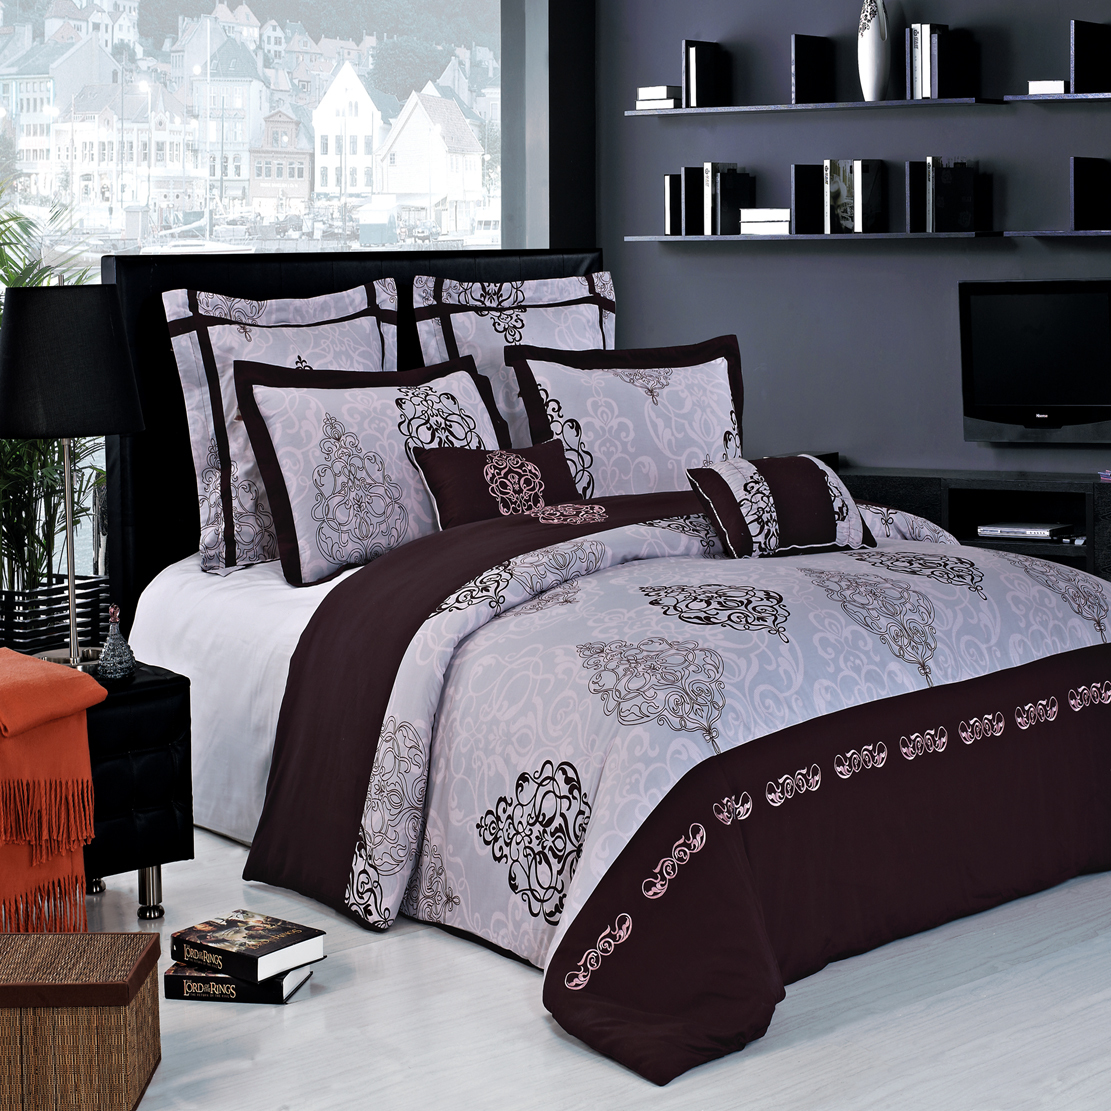 Gizelle 100% cotton Embroidered 7pc Duvet cover Set. The Gizelle Brown, Light Pink and Grey by Royal Hotel Collection is a rich contemporary Embroidered/Print design in warm stylish tones. The duvet cover set is completed with coordinated Two Pillow shams, Two European shams & Two Decorative cushions. The over all look is one of the simplicity and elegance that will be enjoyed for years to come. The Quilt cover & pillowcases, European pillowcases, and Cushion covers are made of 100% Cotton and the cushion covers are filled with polyester.